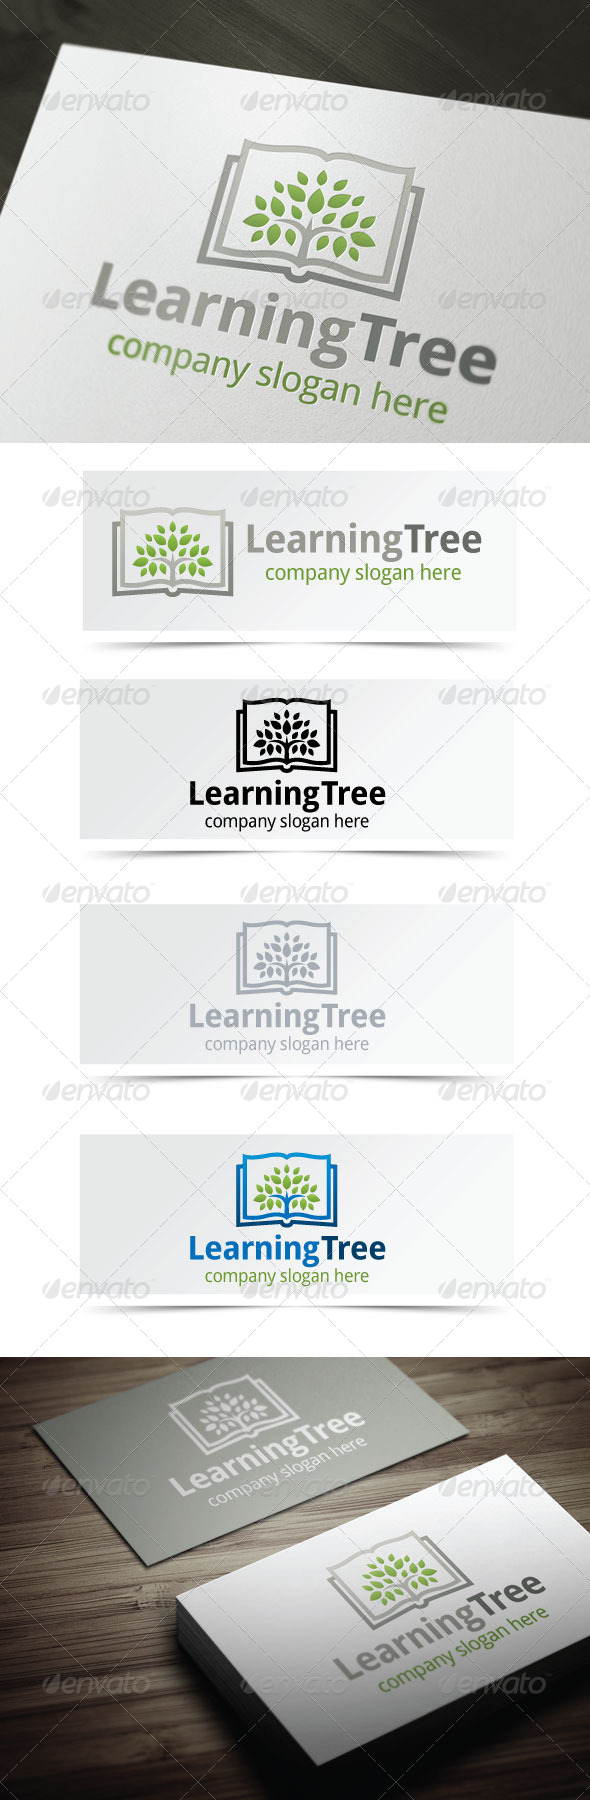 GraphicRiver Learning Tree 4355941